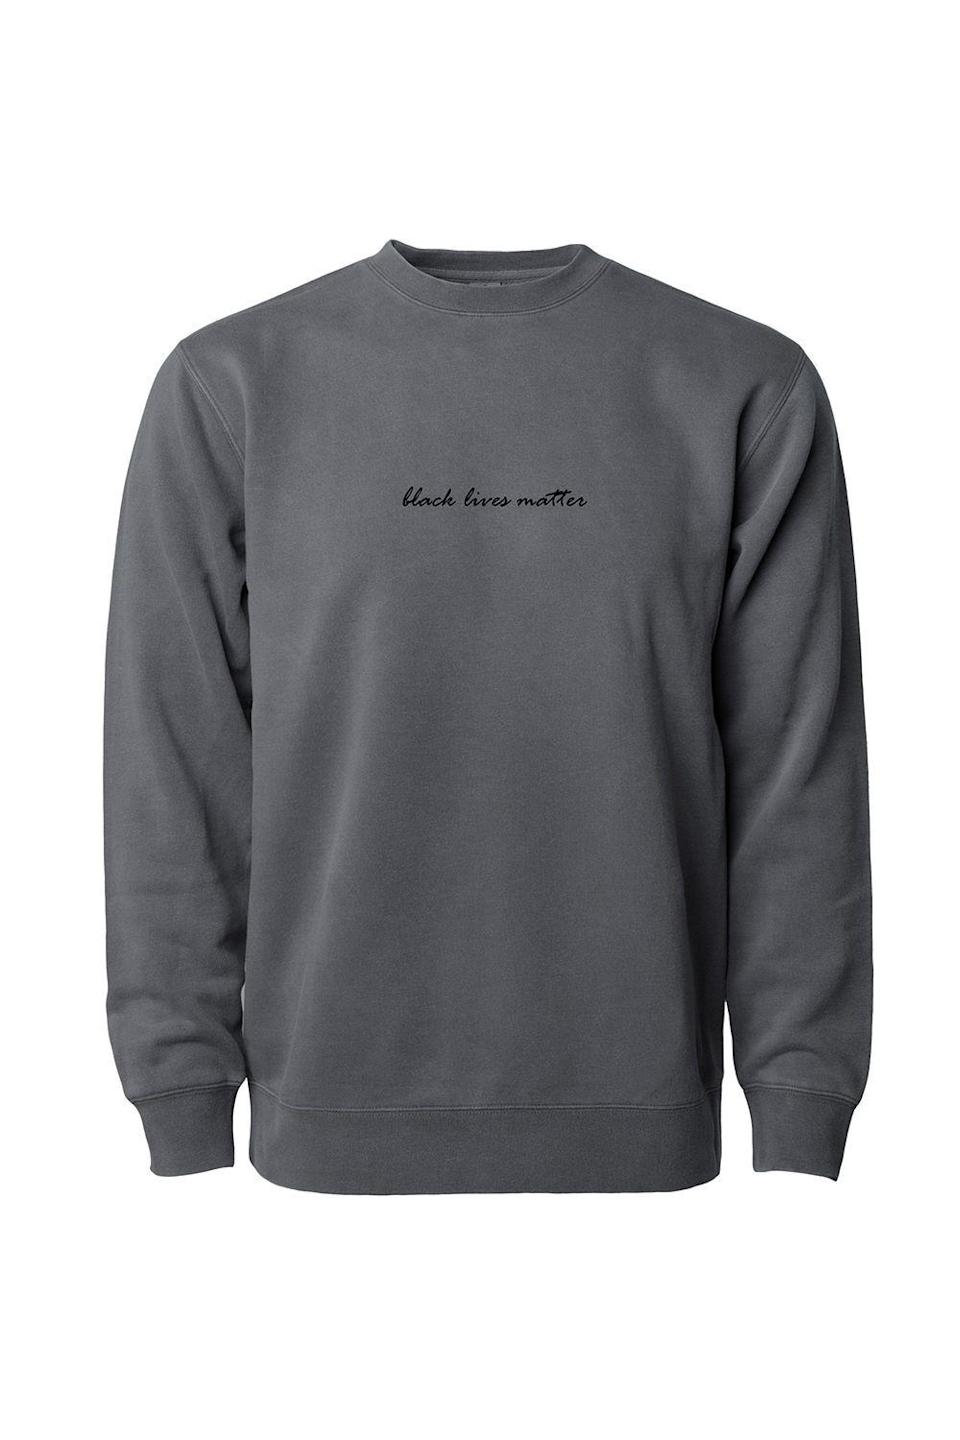 """<p><strong>Phenomenal Woman</strong></p><p>phenomenalwoman.us</p><p><strong>$59.00</strong></p><p><a href=""""https://phenomenalwoman.us/collections/black-lives-matter/products/copy-of-phenomenally-soft-sweatshirt-black"""" rel=""""nofollow noopener"""" target=""""_blank"""" data-ylk=""""slk:SHOP NOW"""" class=""""link rapid-noclick-resp"""">SHOP NOW</a></p><p>Inspired by the Maya Angelou's """"Phenomenal Woman"""" poem, the <a href=""""https://phenomenalwoman.us/"""" rel=""""nofollow noopener"""" target=""""_blank"""" data-ylk=""""slk:Phenomenal Woman Action Campaign"""" class=""""link rapid-noclick-resp"""">Phenomenal Woman Action Campaign</a> was founded to bring awareness to women and minority social causes. Snap up this awesome sweatshirt now and all proceeds will go to <a href=""""https://blackfutureslab.org/"""" rel=""""nofollow noopener"""" target=""""_blank"""" data-ylk=""""slk:Black Futures Lab"""" class=""""link rapid-noclick-resp"""">Black Futures Lab</a>, an organization that helps Black communities build political power at the local-, state-, and federal-levels. </p>"""